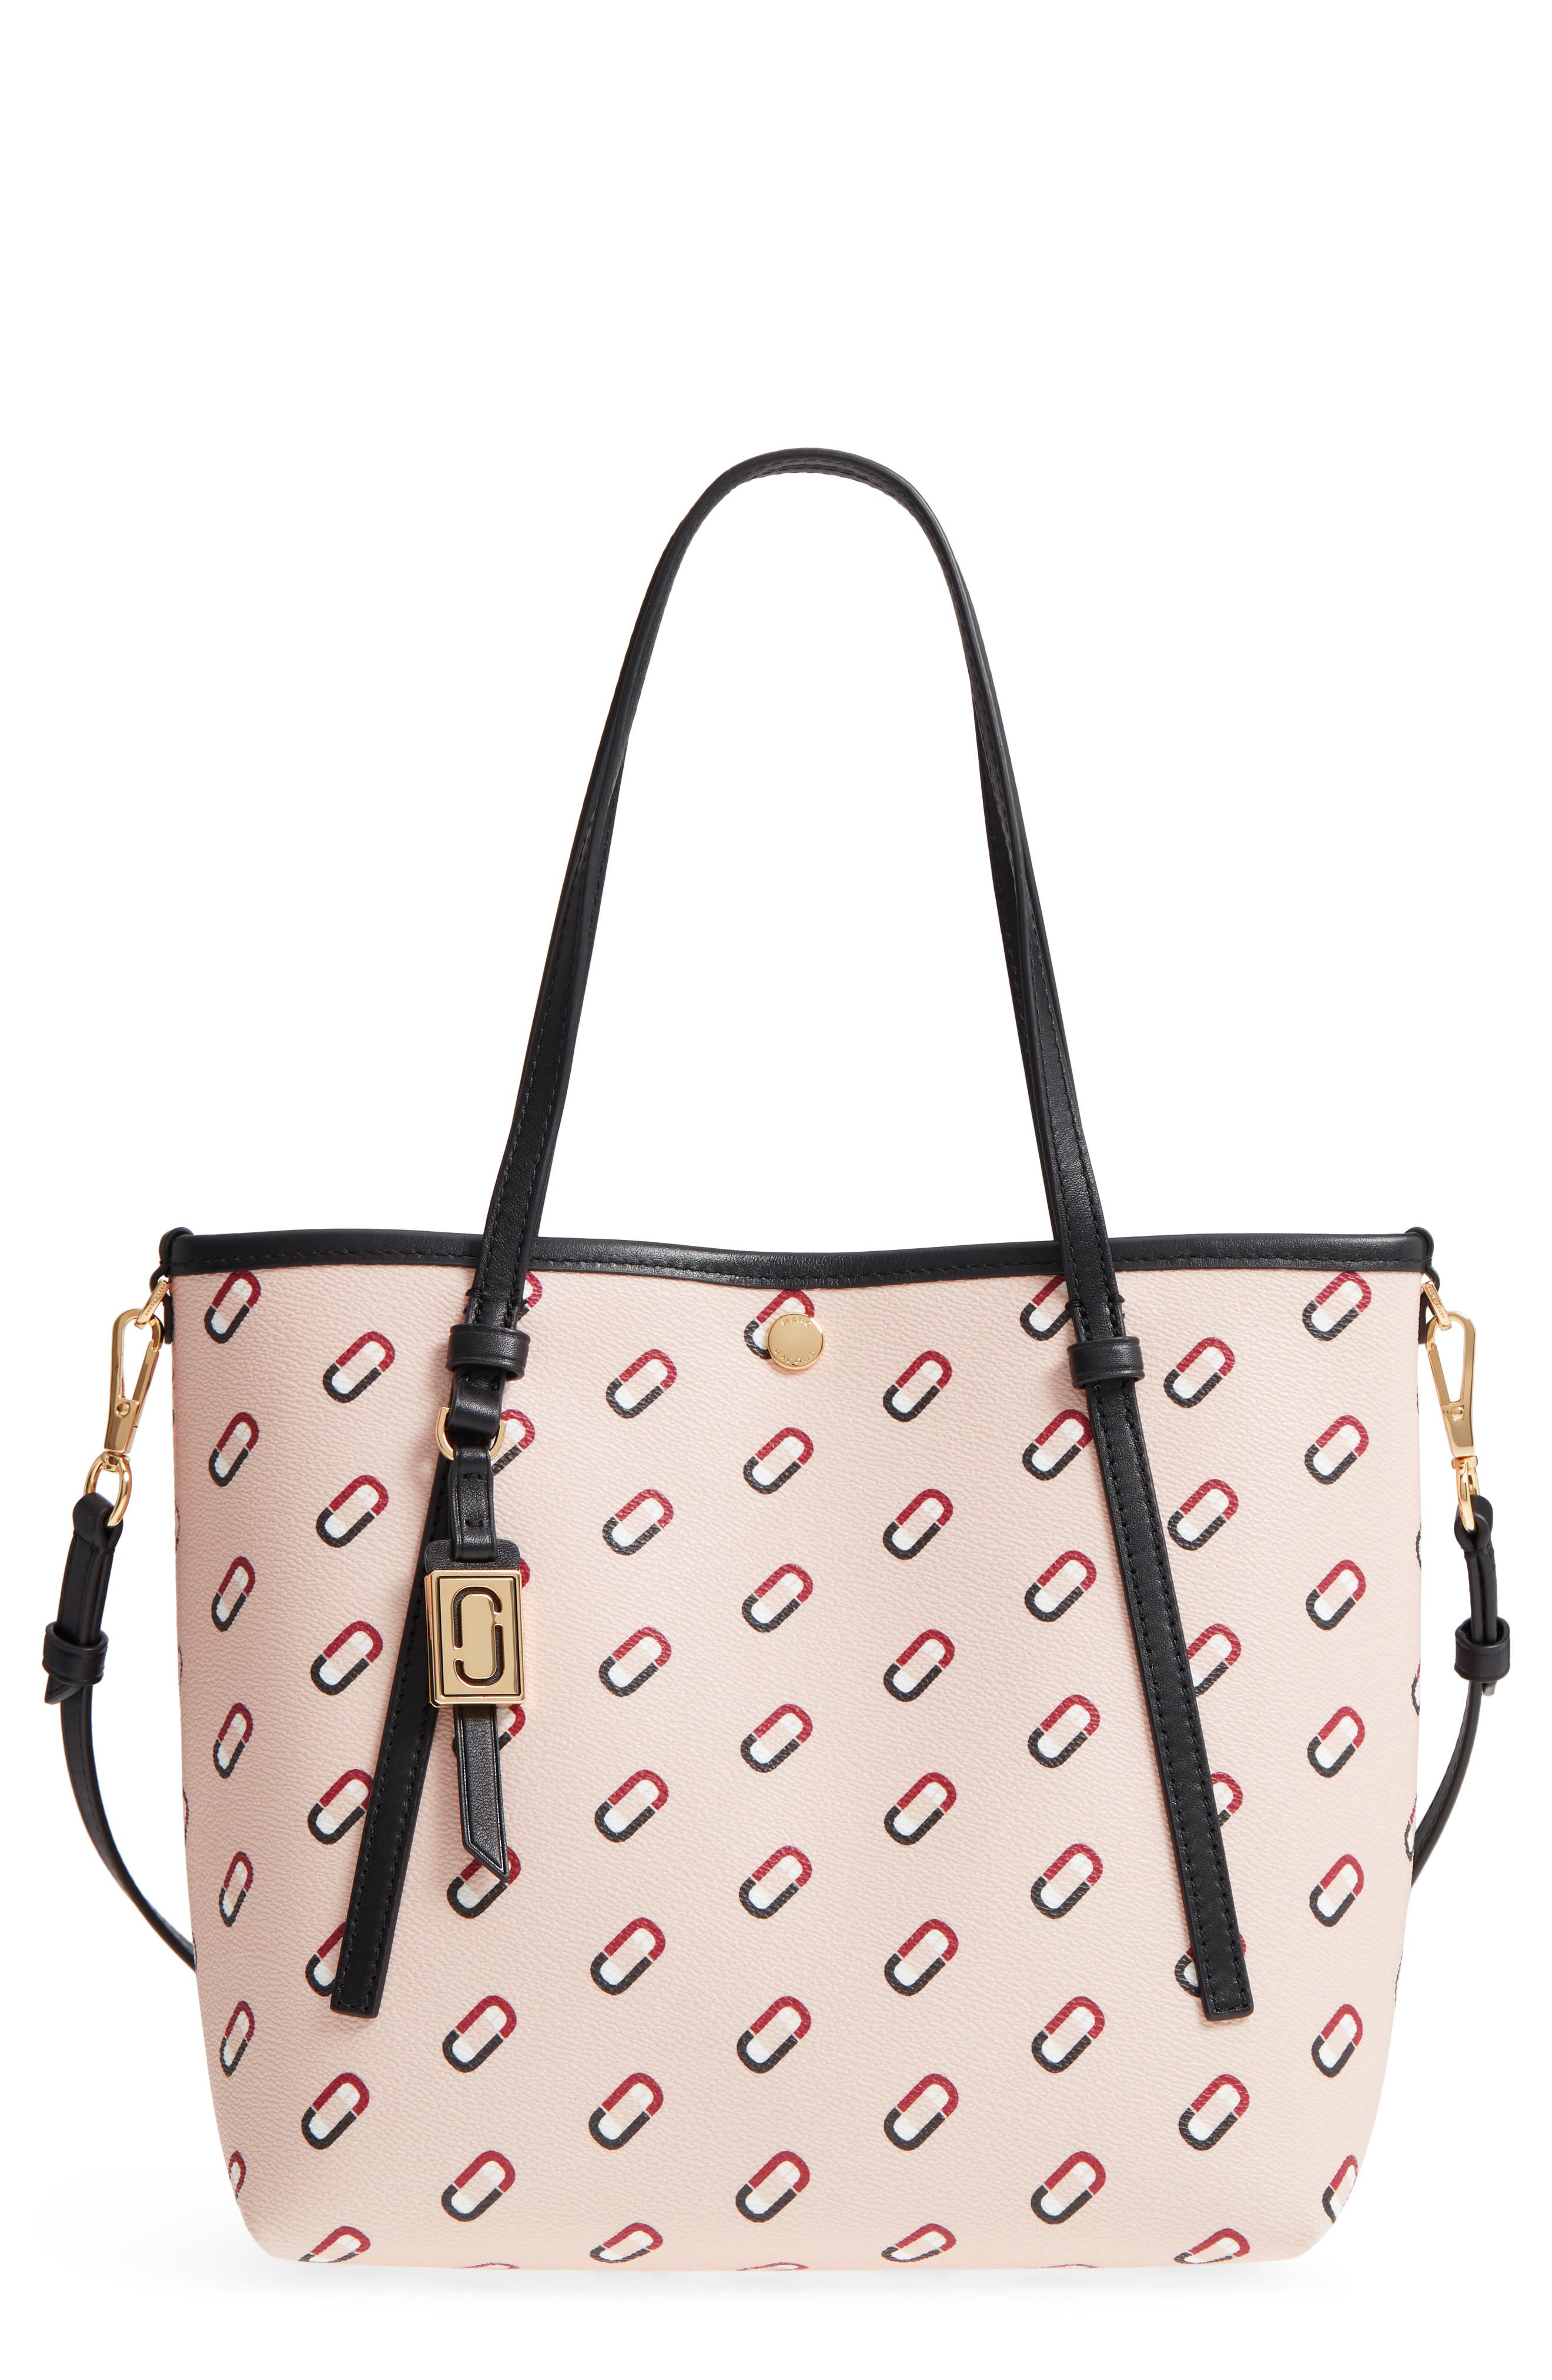 MARC JACOBS Logo Scream Faux Leather Tote